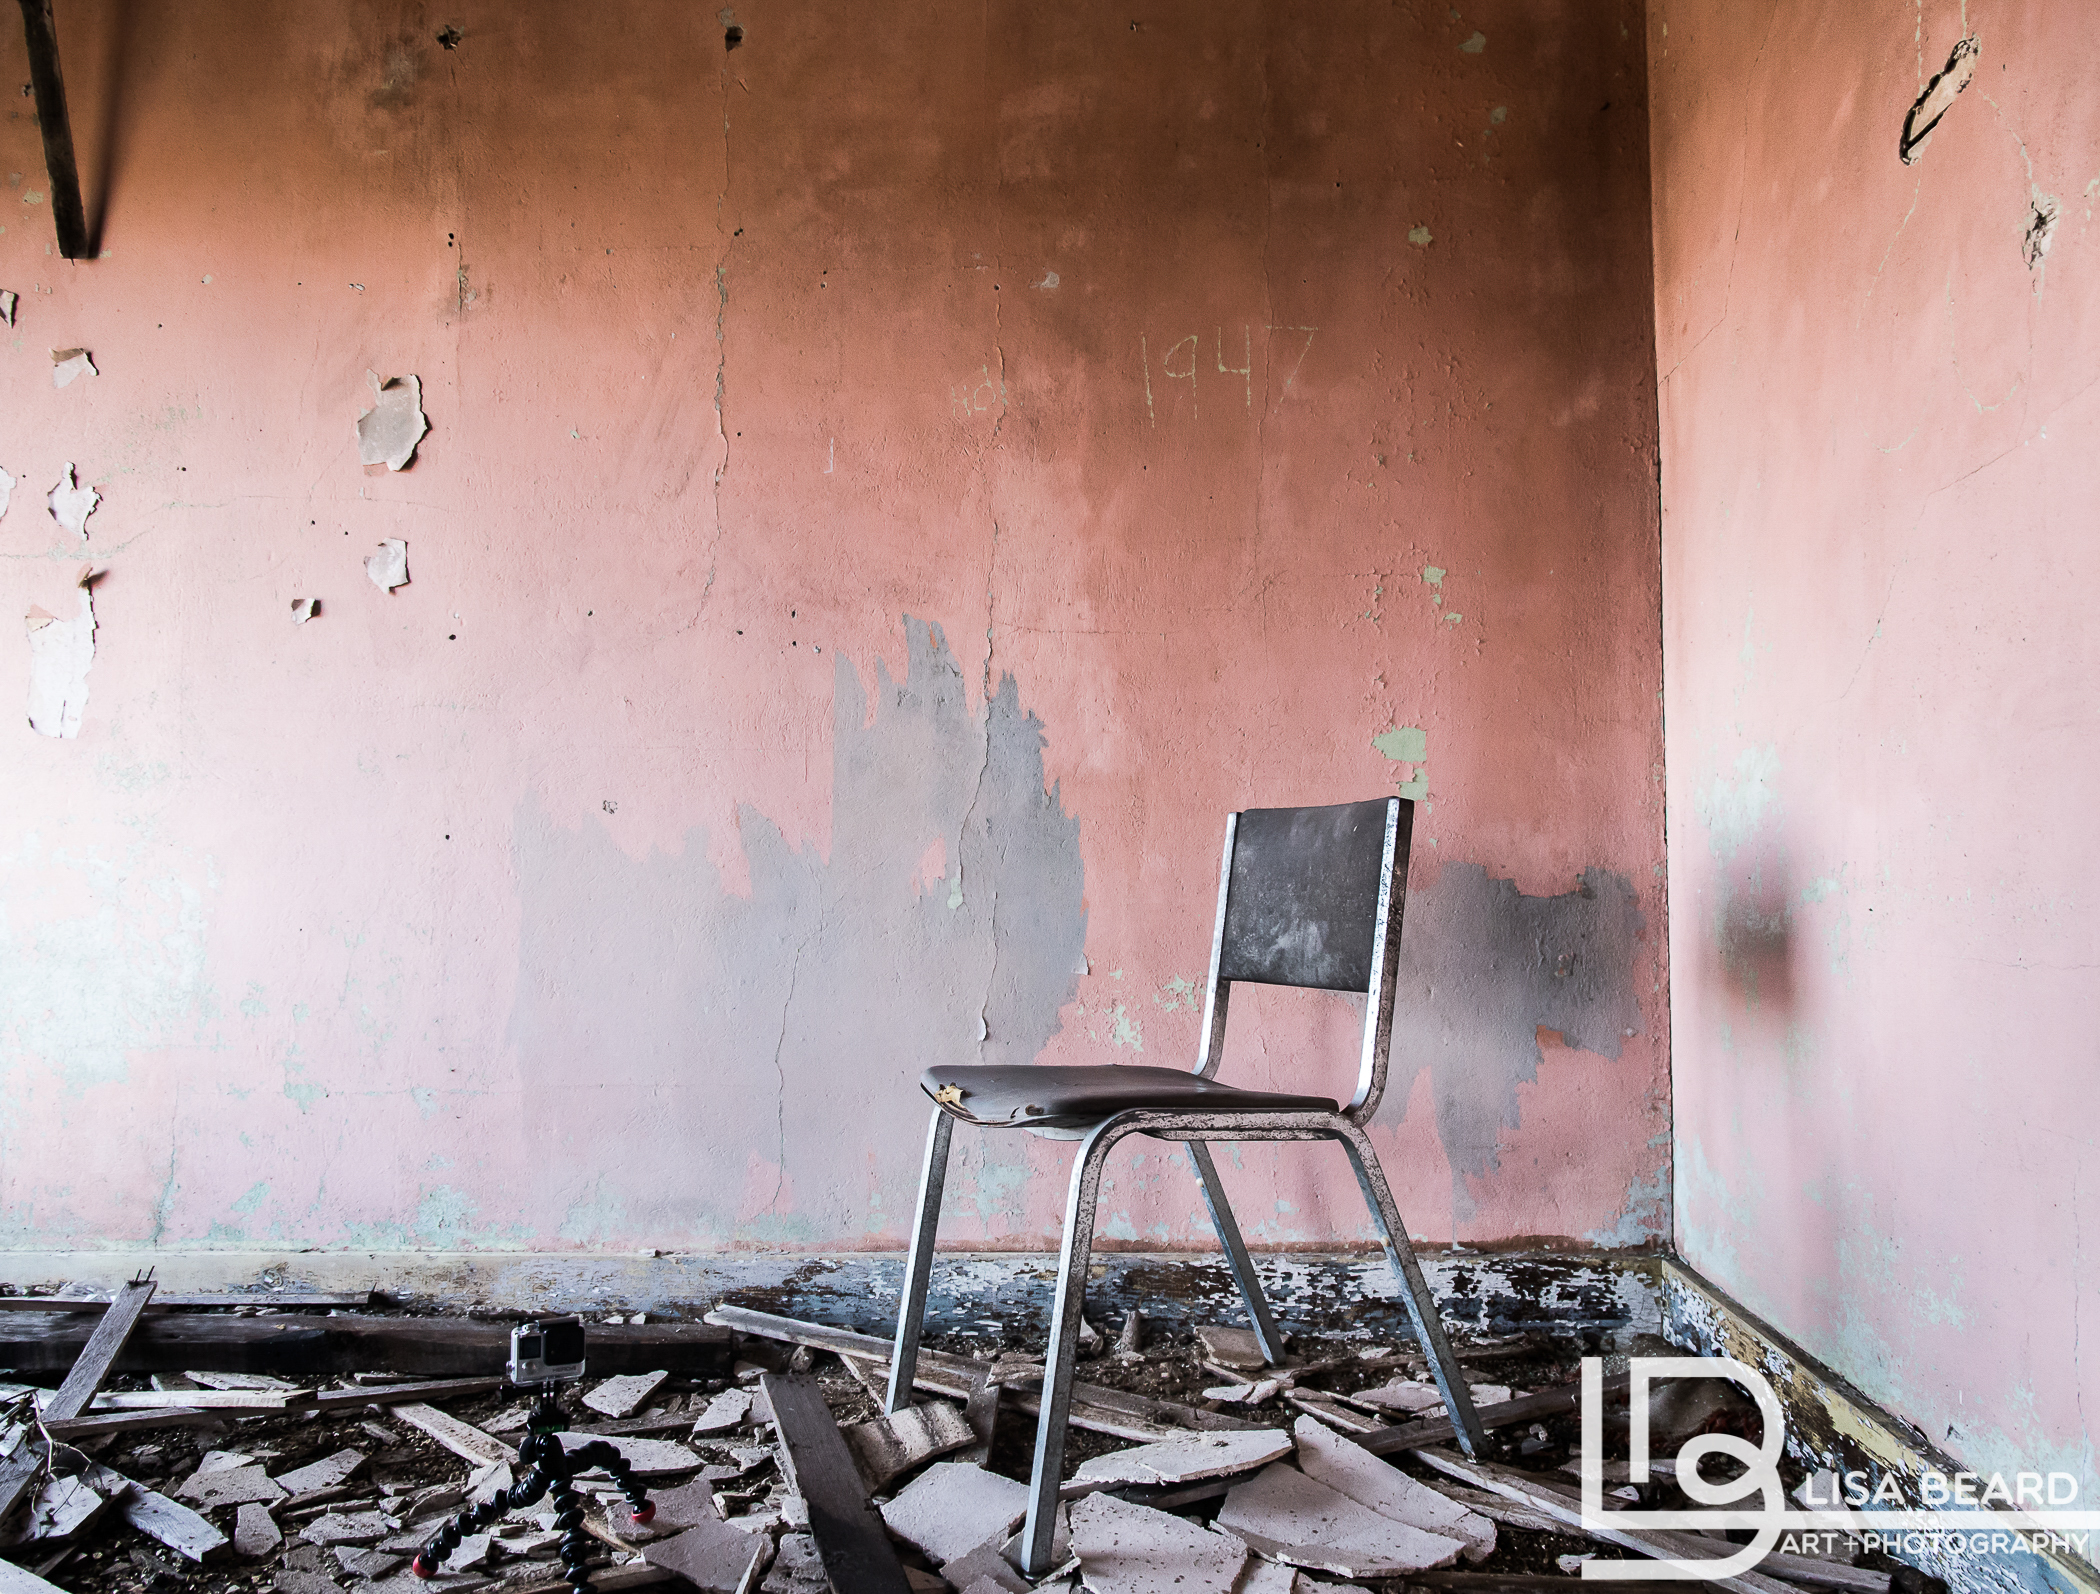 Vignette used for below images. The pink walls, the chair, and the 1947 had me from the start.